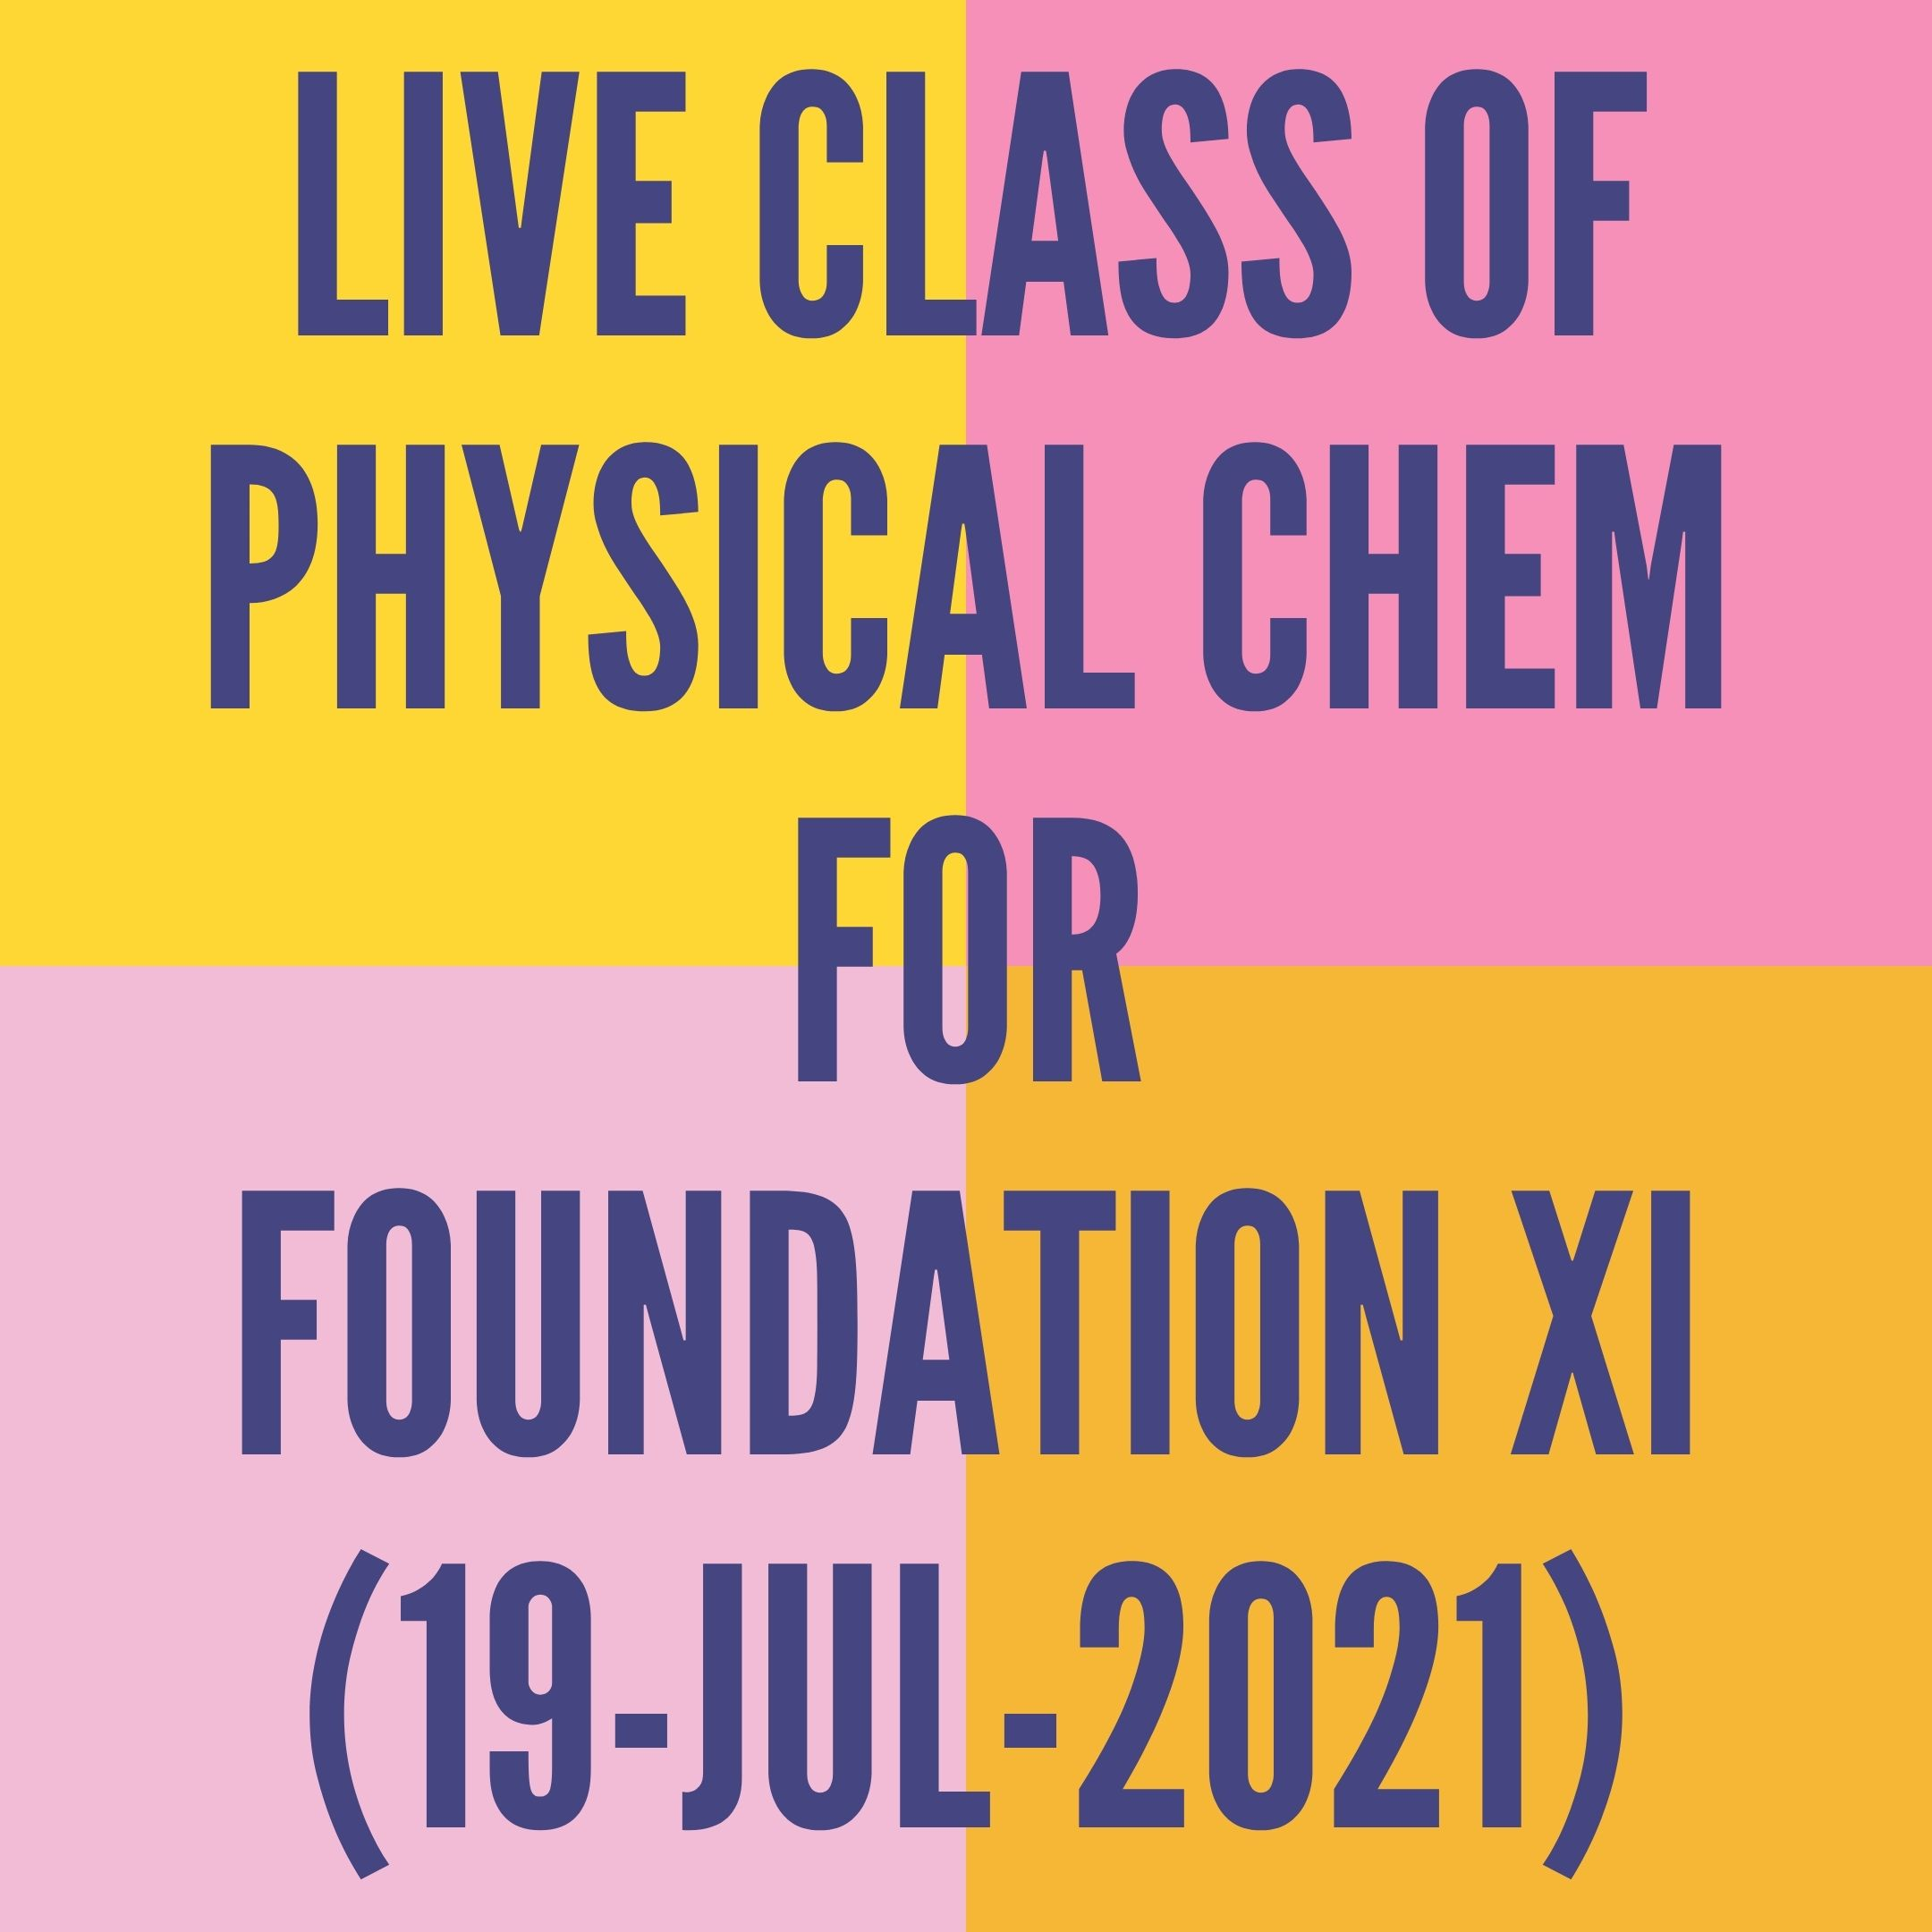 LIVE CLASS OF PHYSICAL CHEMISTRY FOR FOUNDATION XI (19-JUL-2021) REDOX REACTION